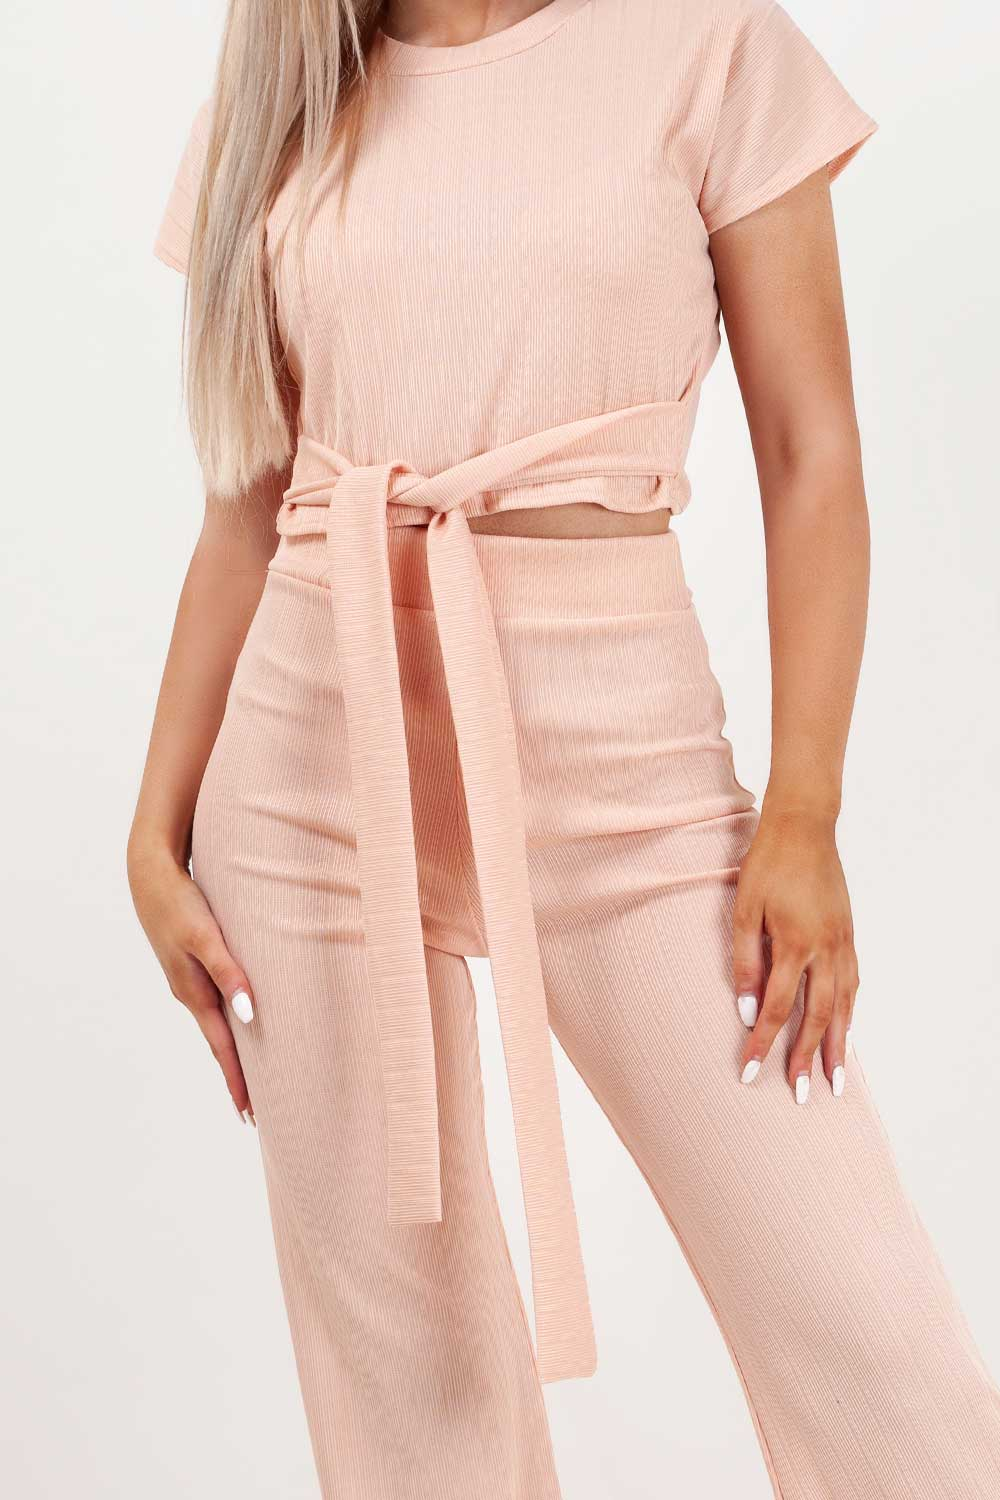 womens pink loungewear co ord